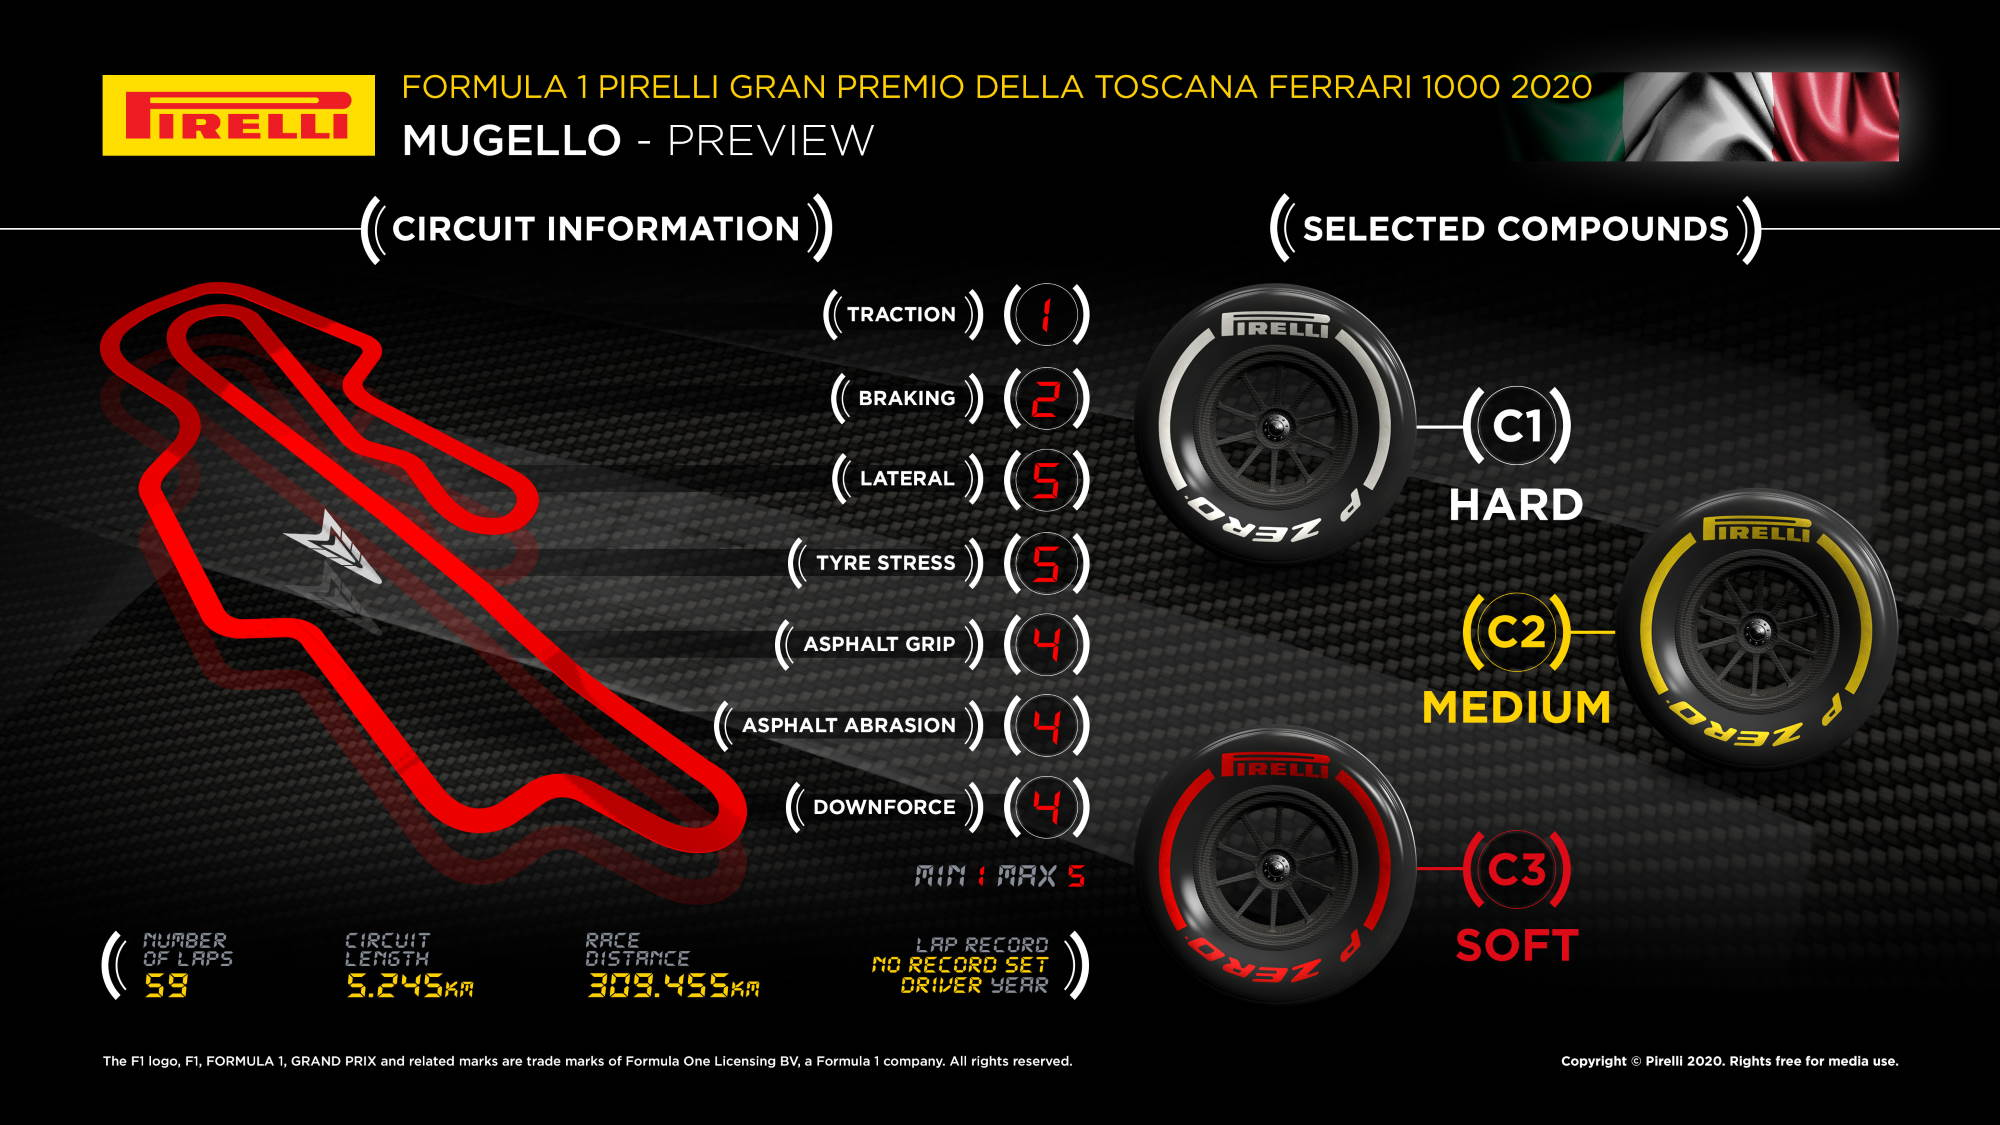 2020 Tuscan GP Mugello track map with Pirelli compounds Photo Pirelli Edited by MAXF1net